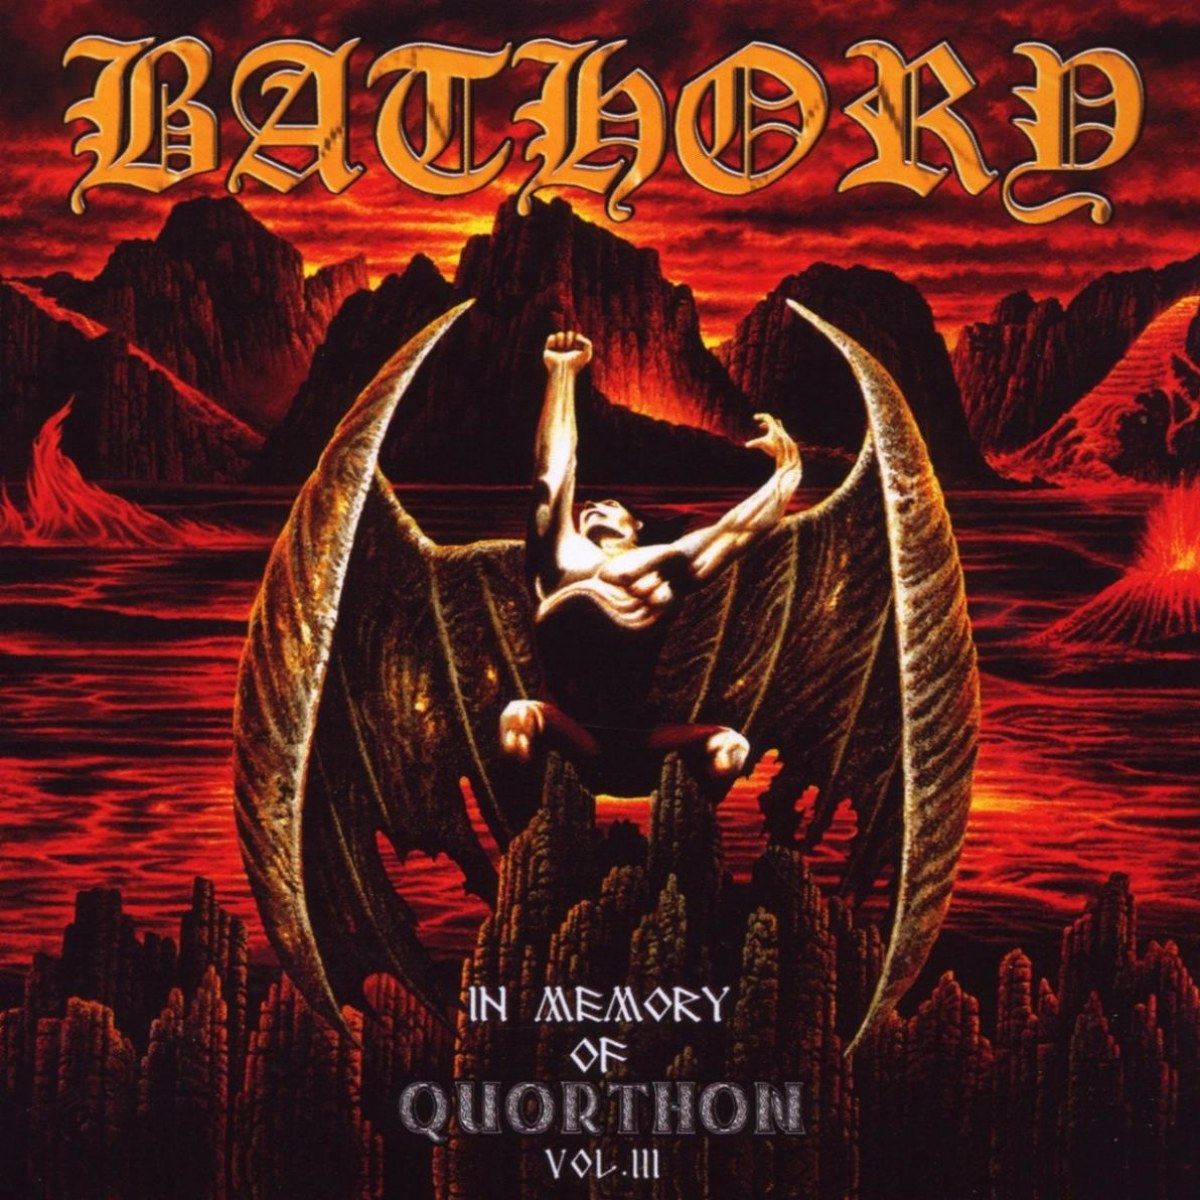 Review for Bathory - In Memory of Quorthon (Vol. III)